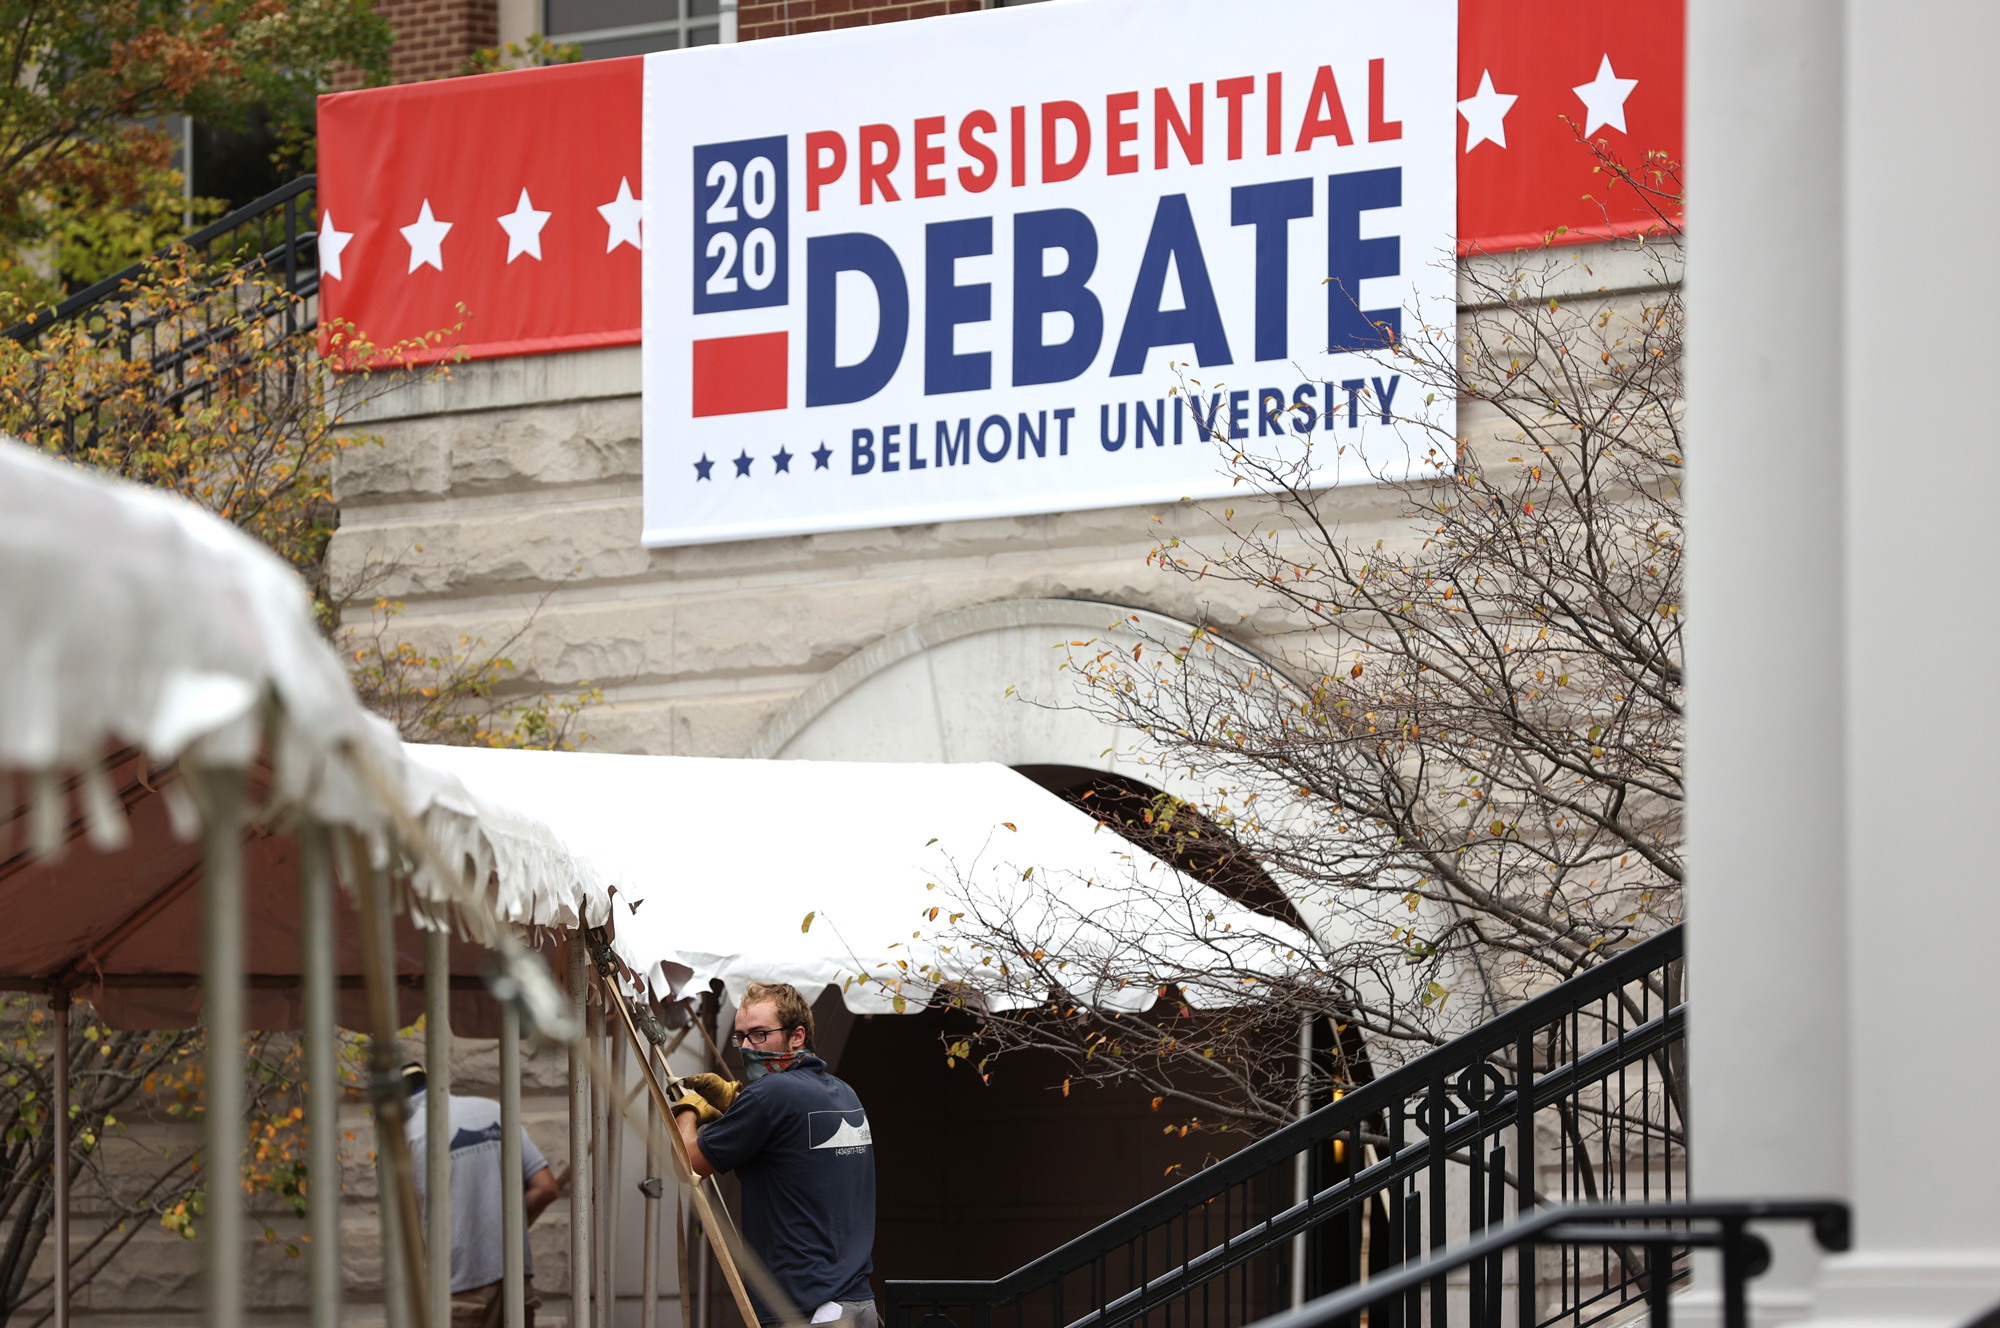 Workers set up a tent outside of the Curb Event Center at Belmont University on October 19 in Nashville, Tennessee.